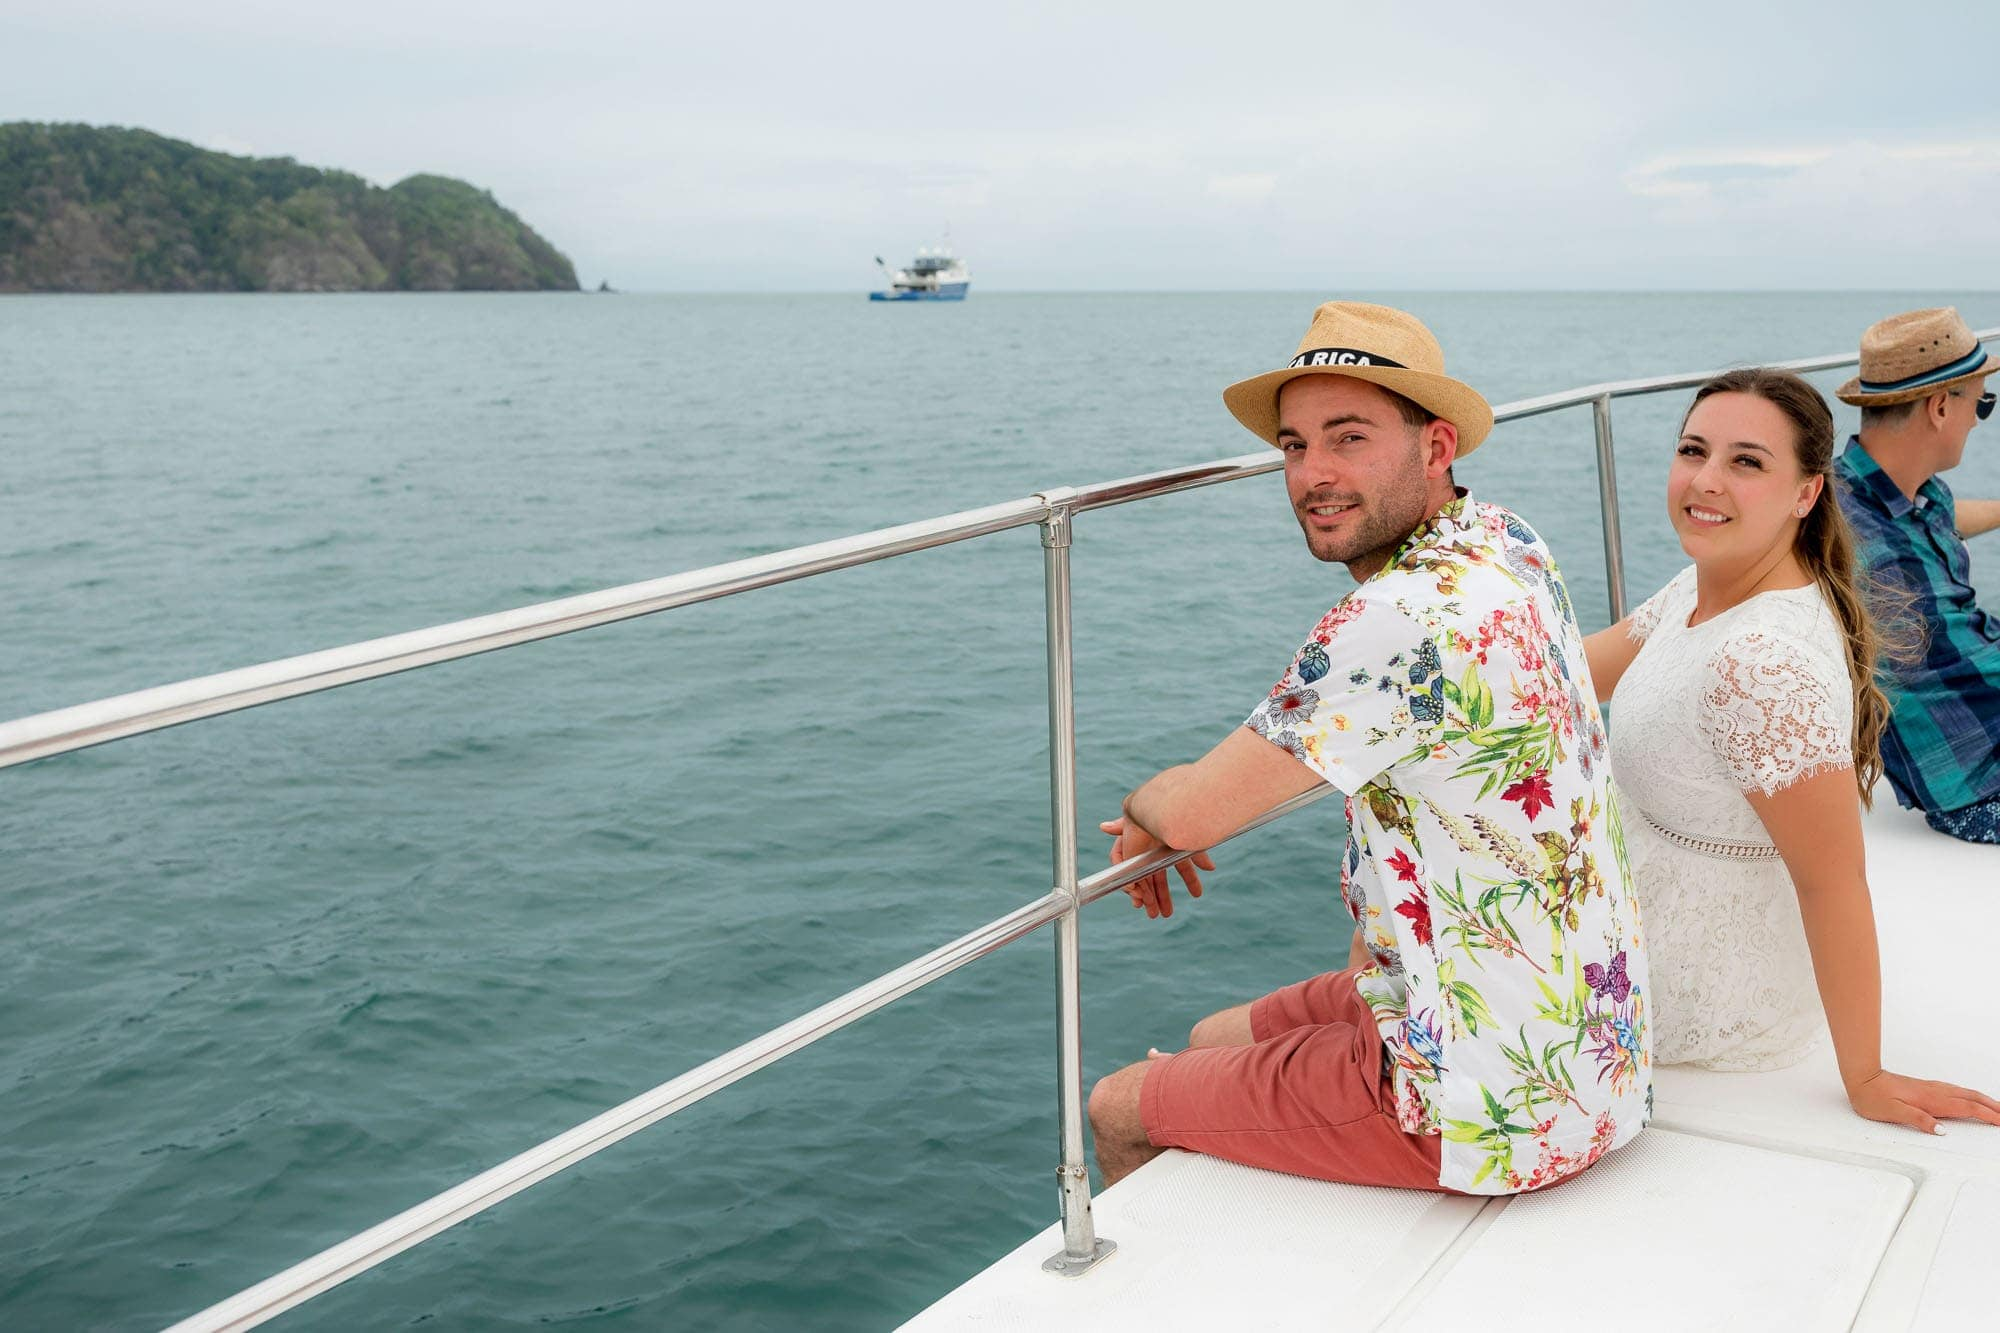 catamaran ride in costa rica